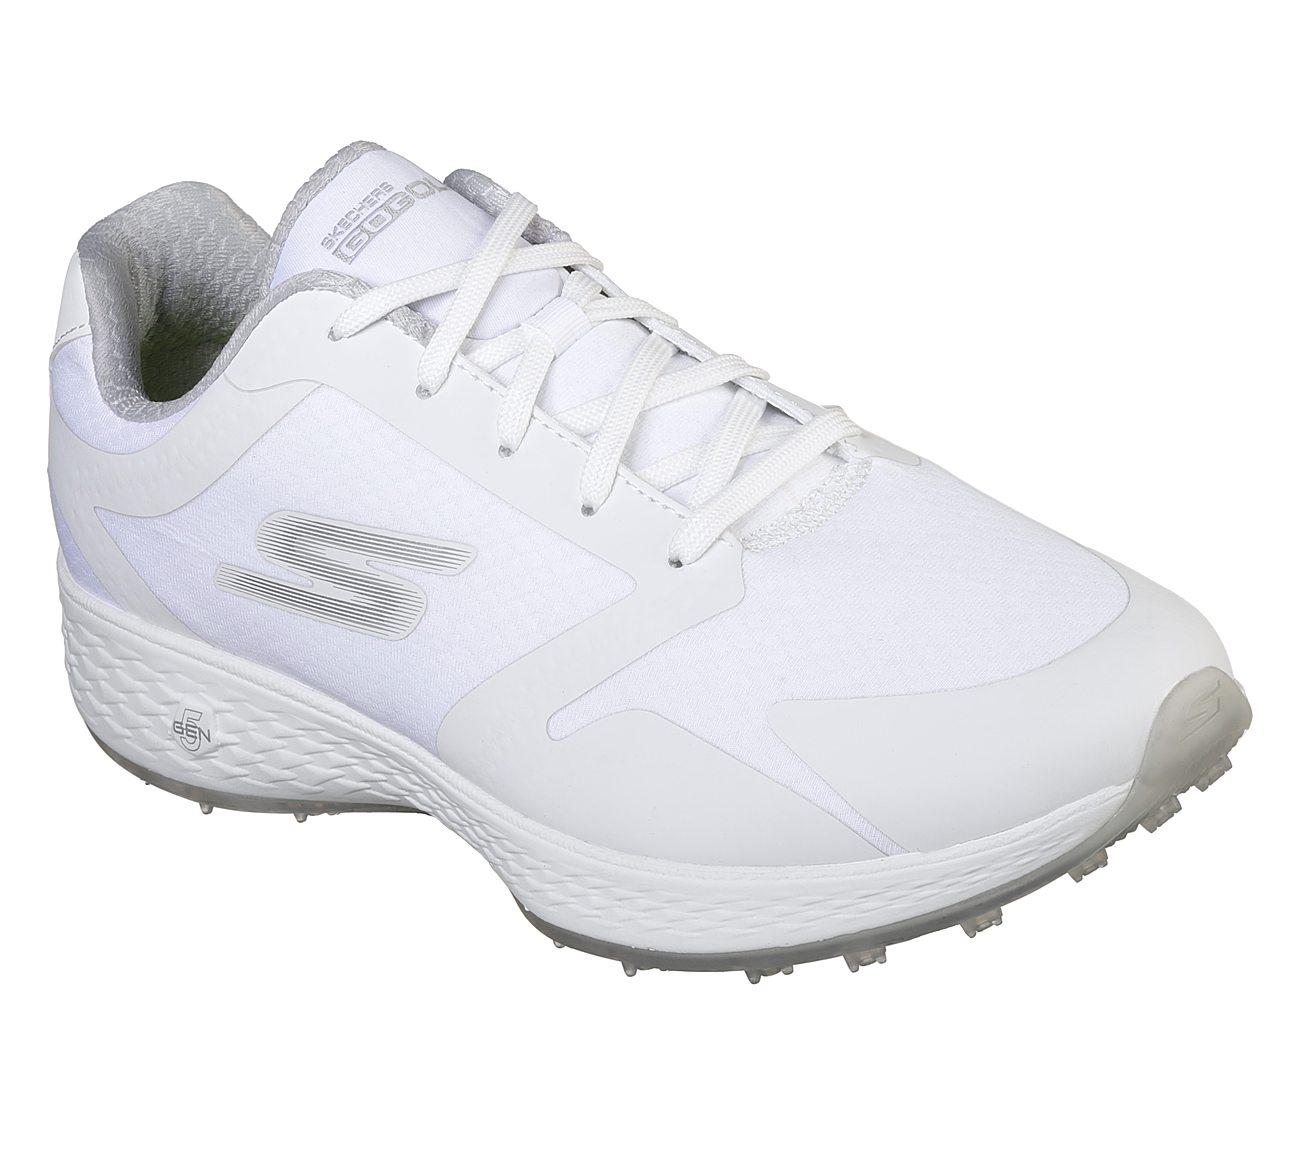 Skechers GO GOLF Eagle - Relaxed Fit